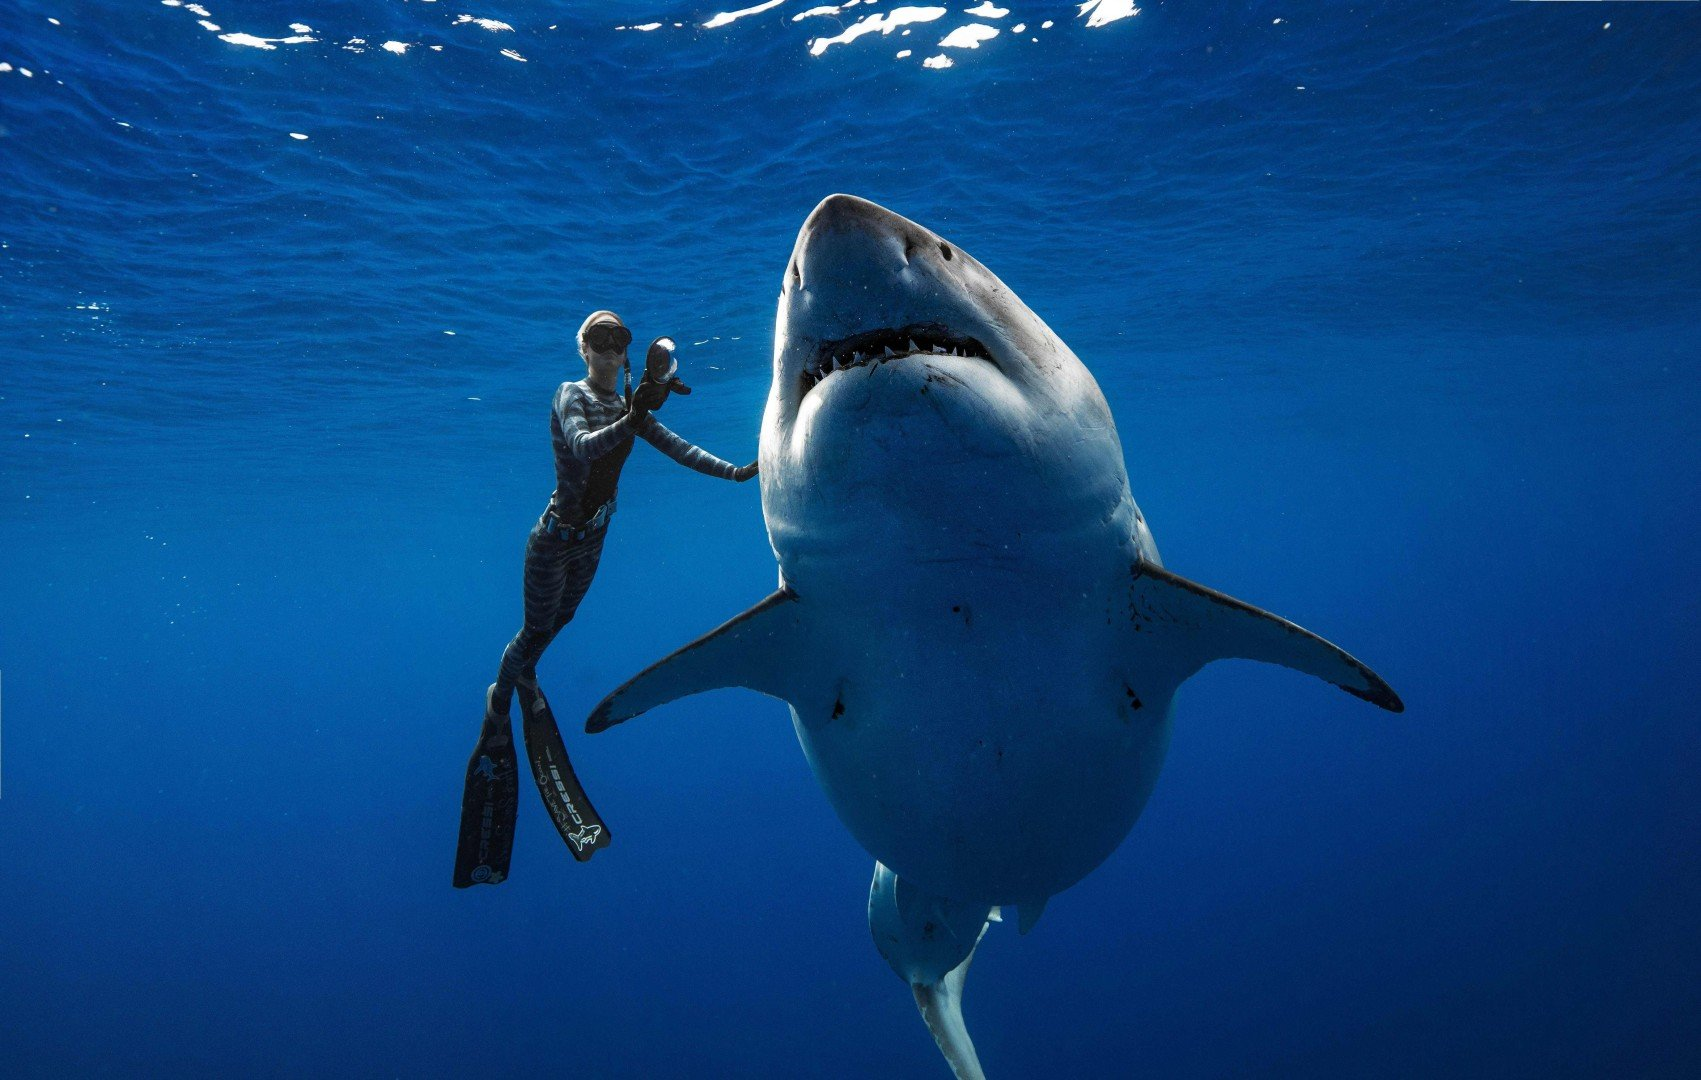 45ae1bad5c2e US divers spot 'one of the biggest ever' great white sharks off Hawaii  coast. '